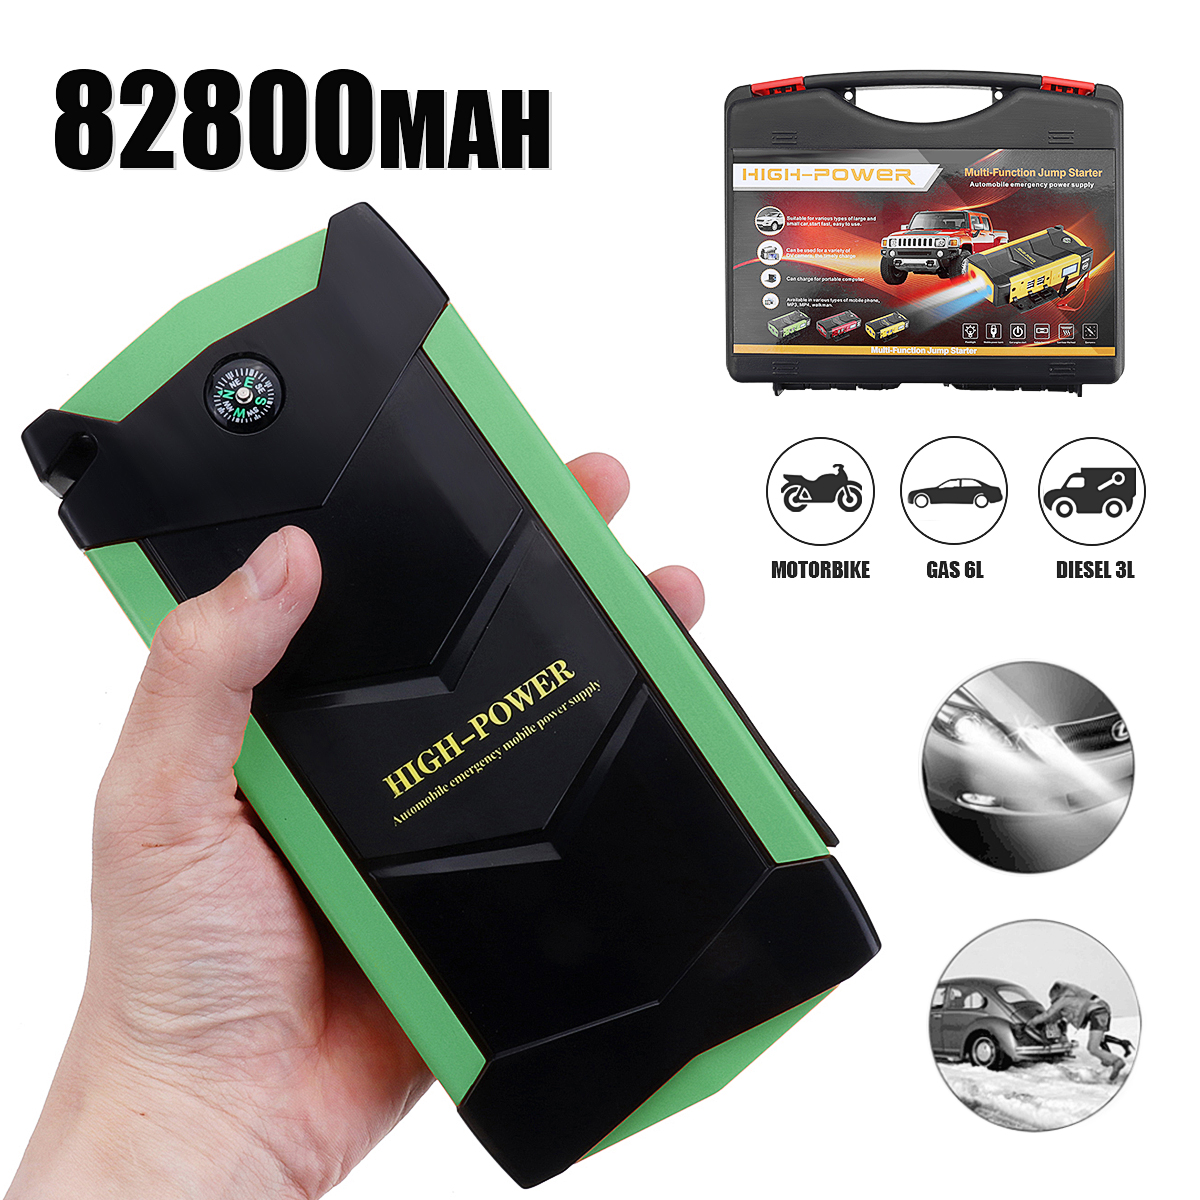 12V 82800mAh 4USB High Power Car Jump Starter Battery Charger Starting Car Booster Power Bank Tool Kit For Auto Starting Device 89800mah car jump starter 12v 4usb 600a portable car battery booster charger booster power bank starting device car starter